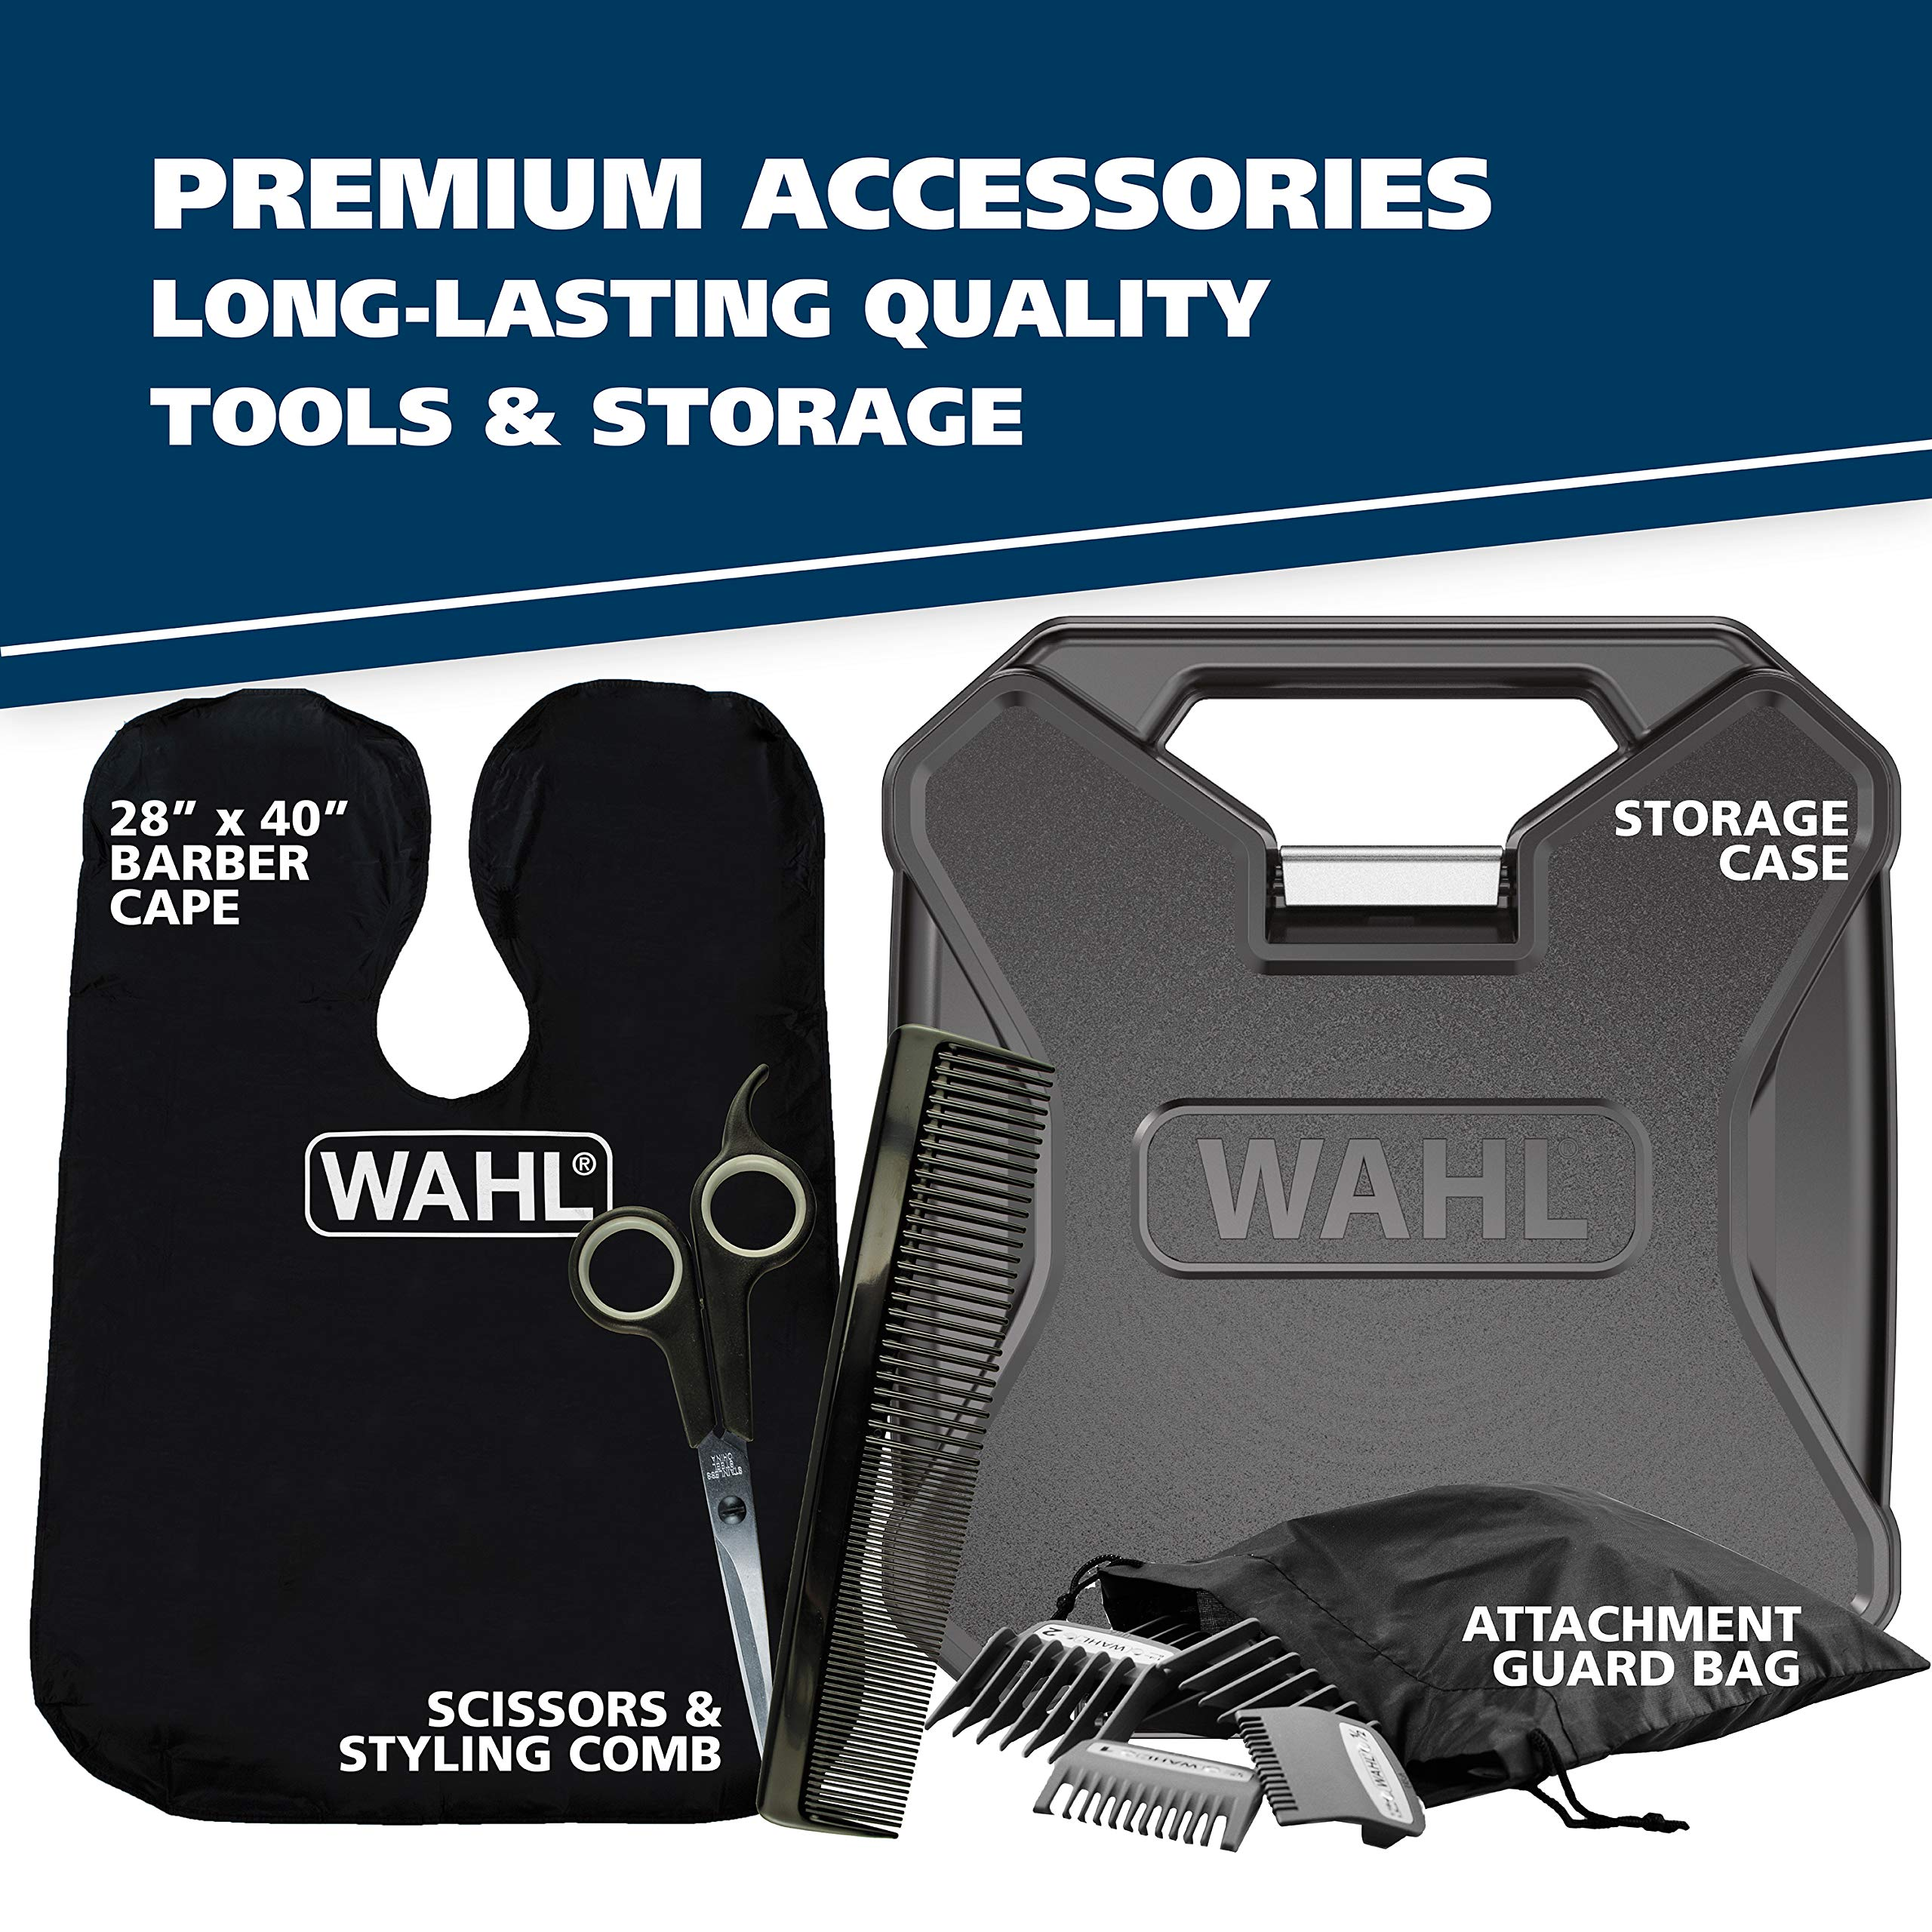 Wahl Clipper Elite Pro High Performance Haircut Kit for men, includes Electric Hair Clippers, secure fit guide combs with stainless steel clips - By The Brand used by Professionals #79602 by WAHL (Image #6)